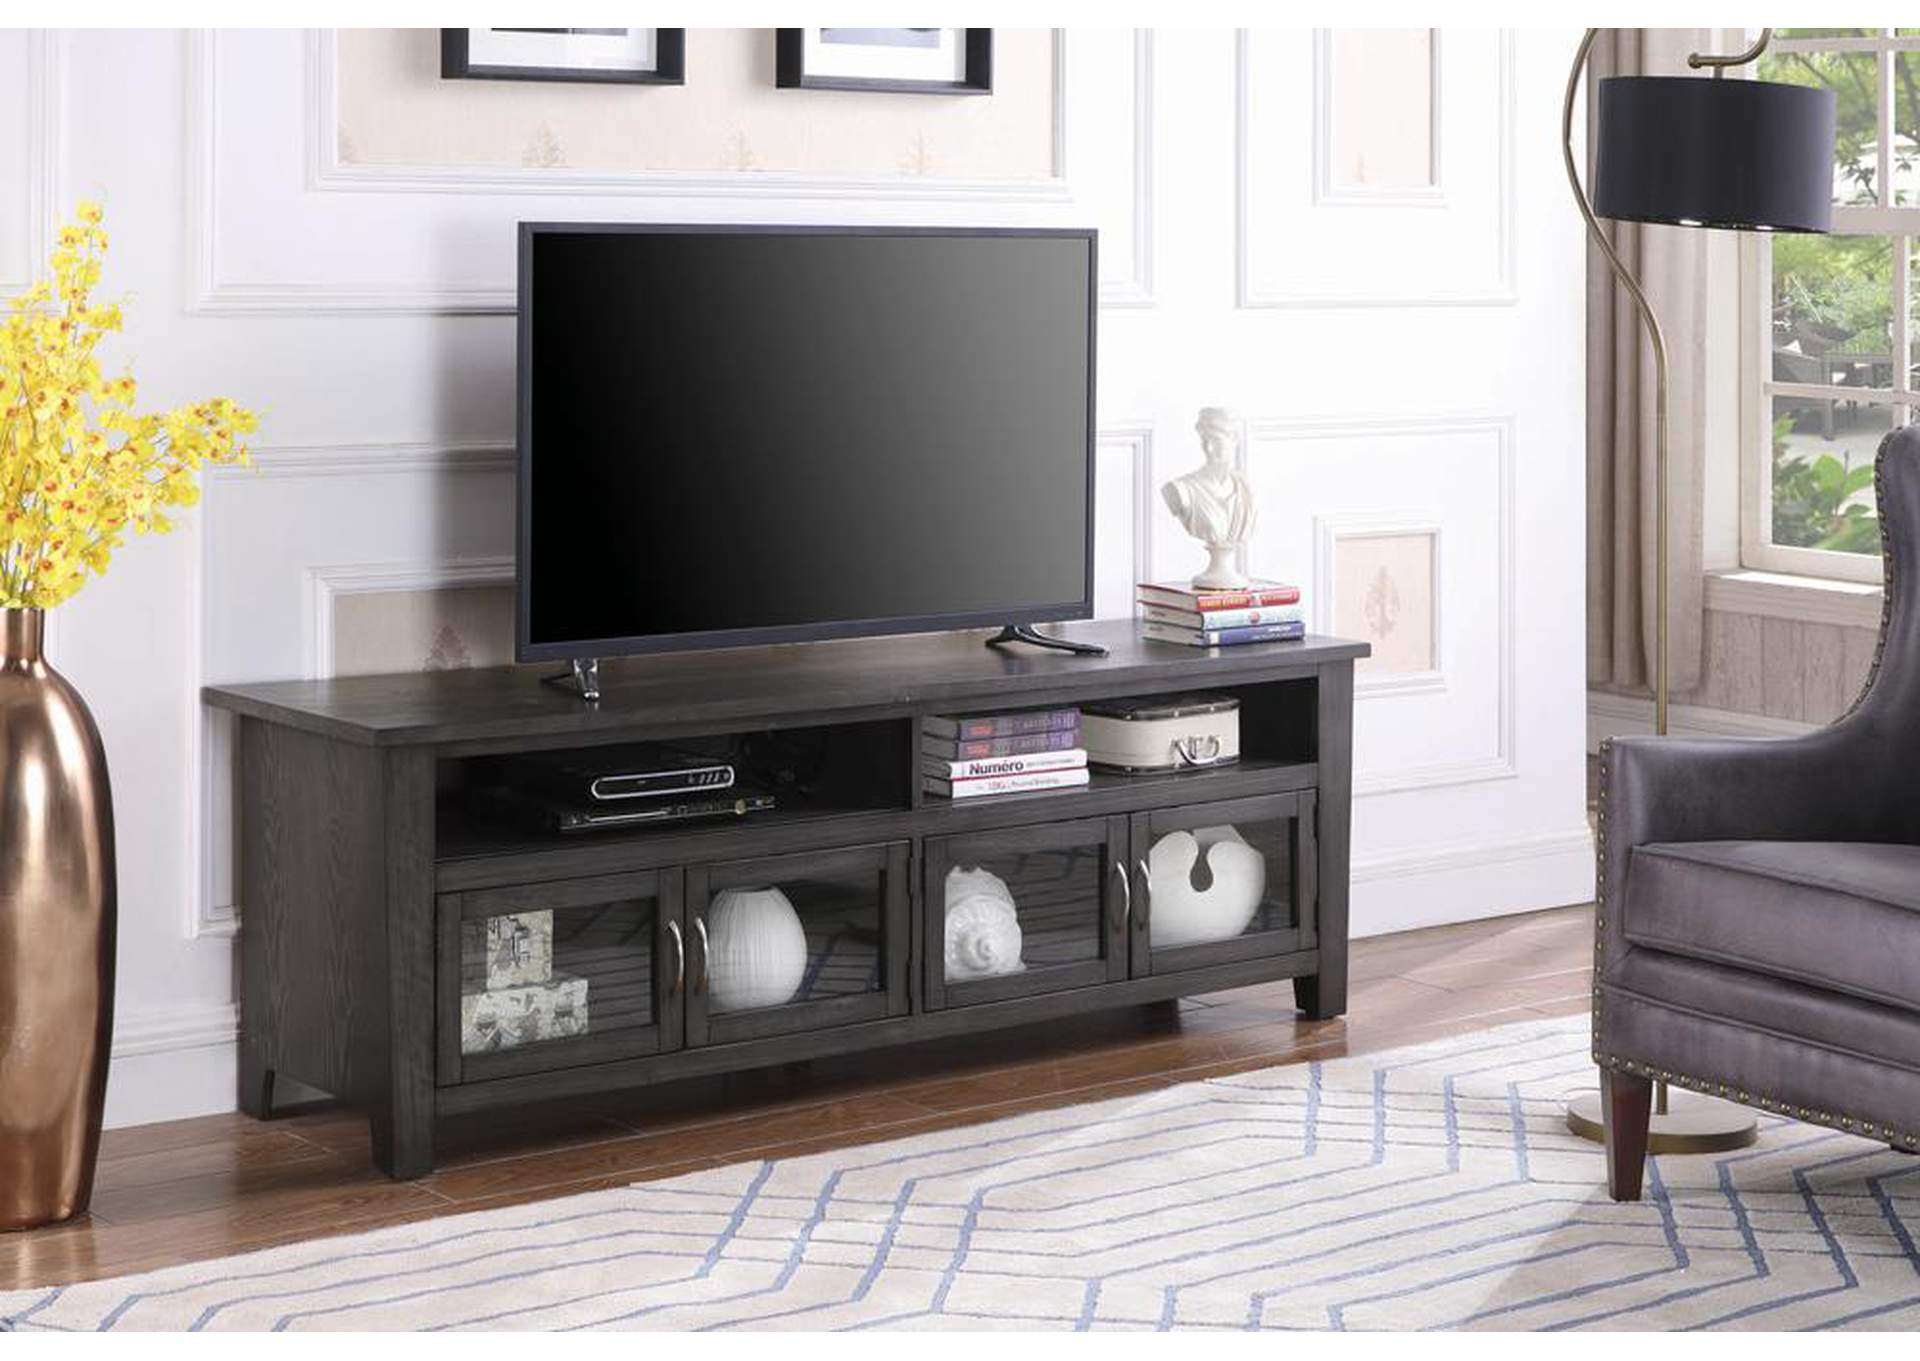 Dark Grey Wooden 72 Inch Tv Console,Coaster Furniture